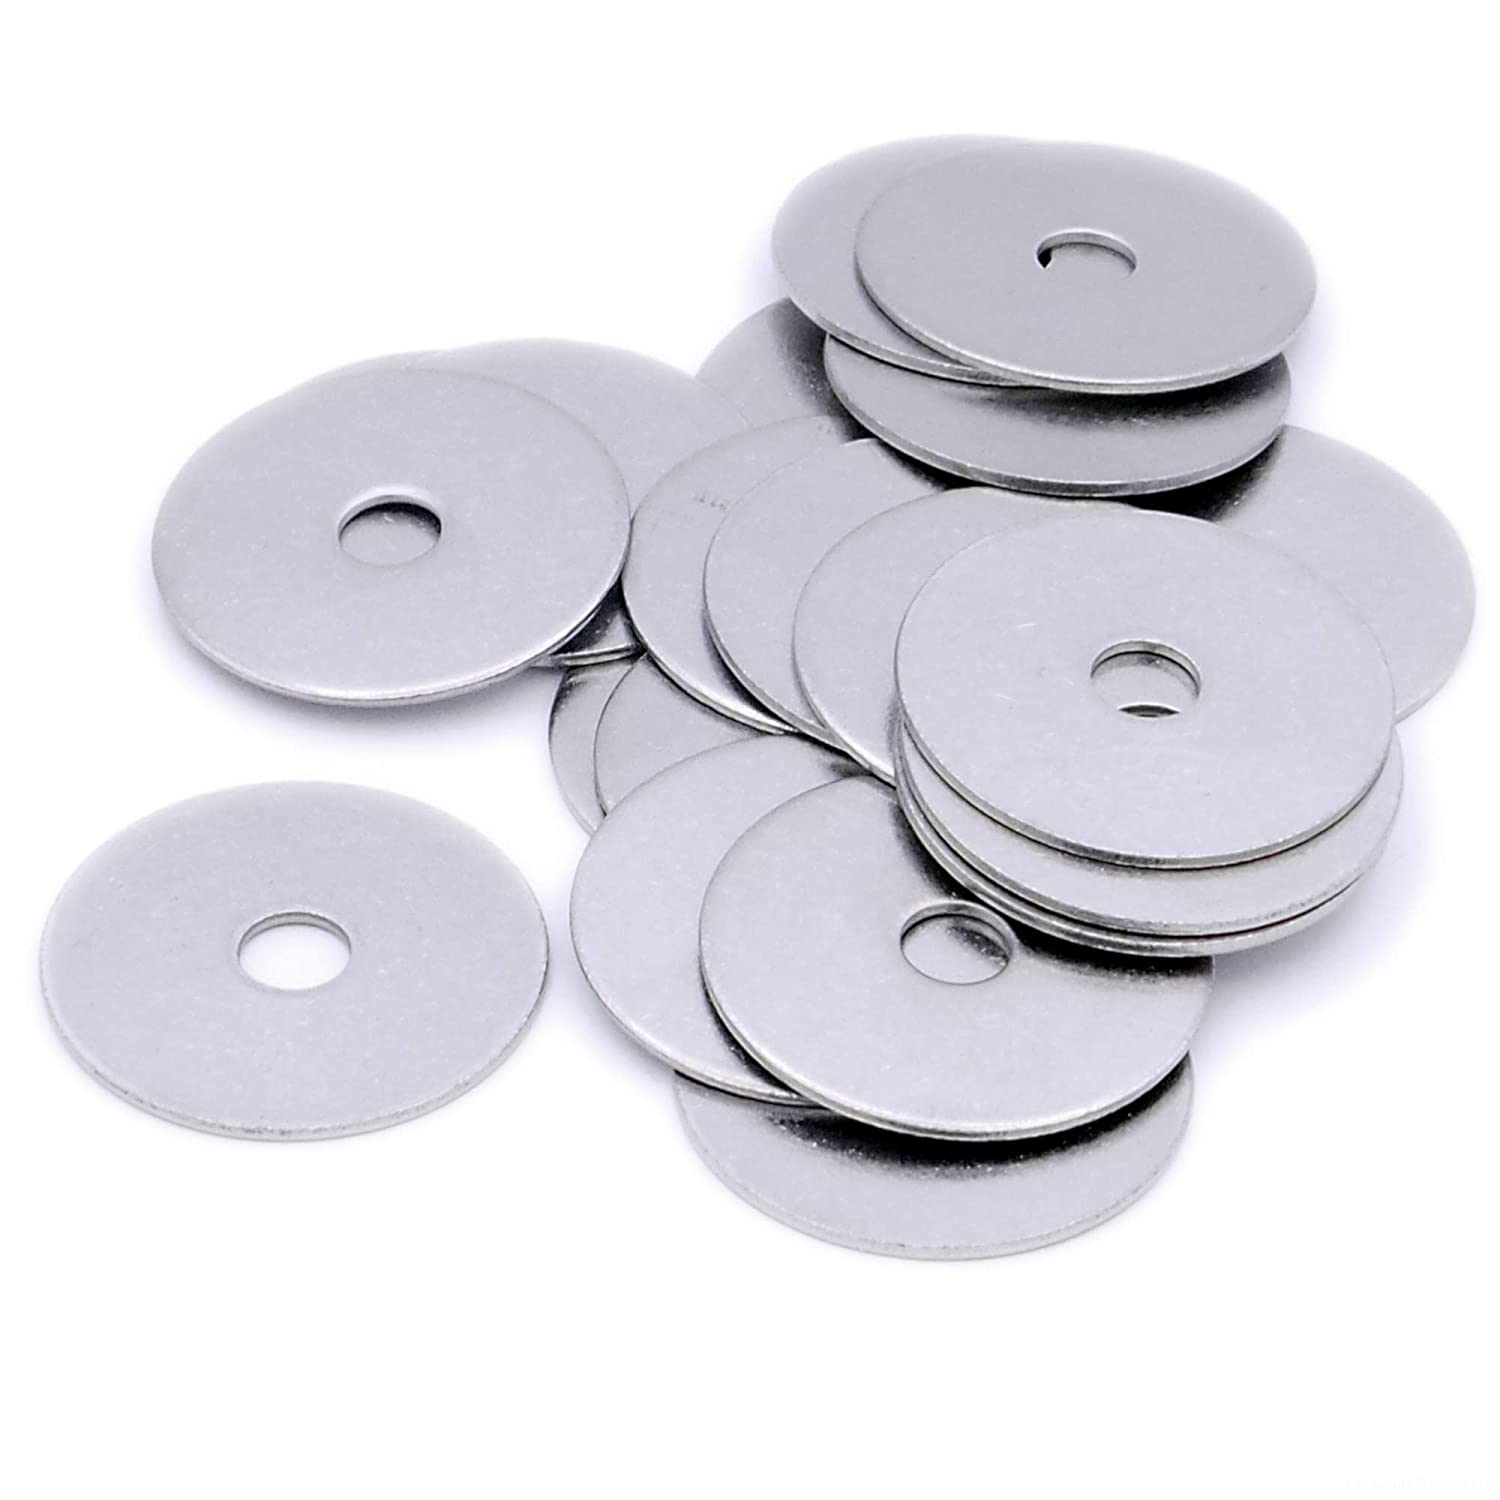 M6 (6mm x 45mm OD) Oversized Mudguard Washer - Stainless Steel (A2) (Pack of 10) Singularity Supplies Ltd